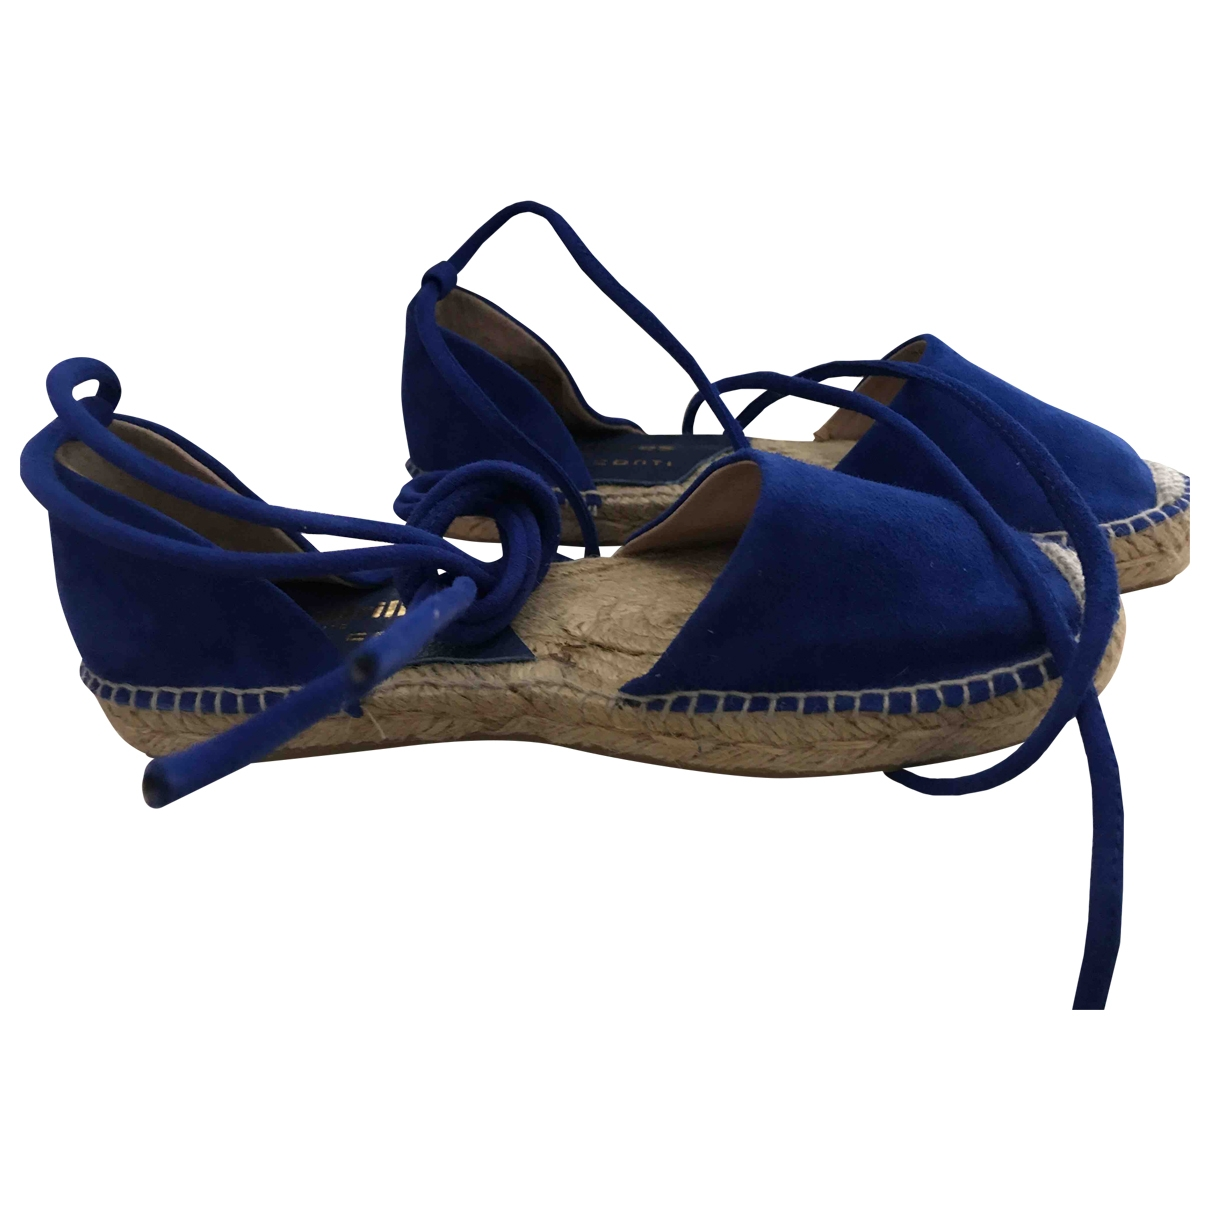 Liviana Conti \N Blue Suede Espadrilles for Women 36 EU